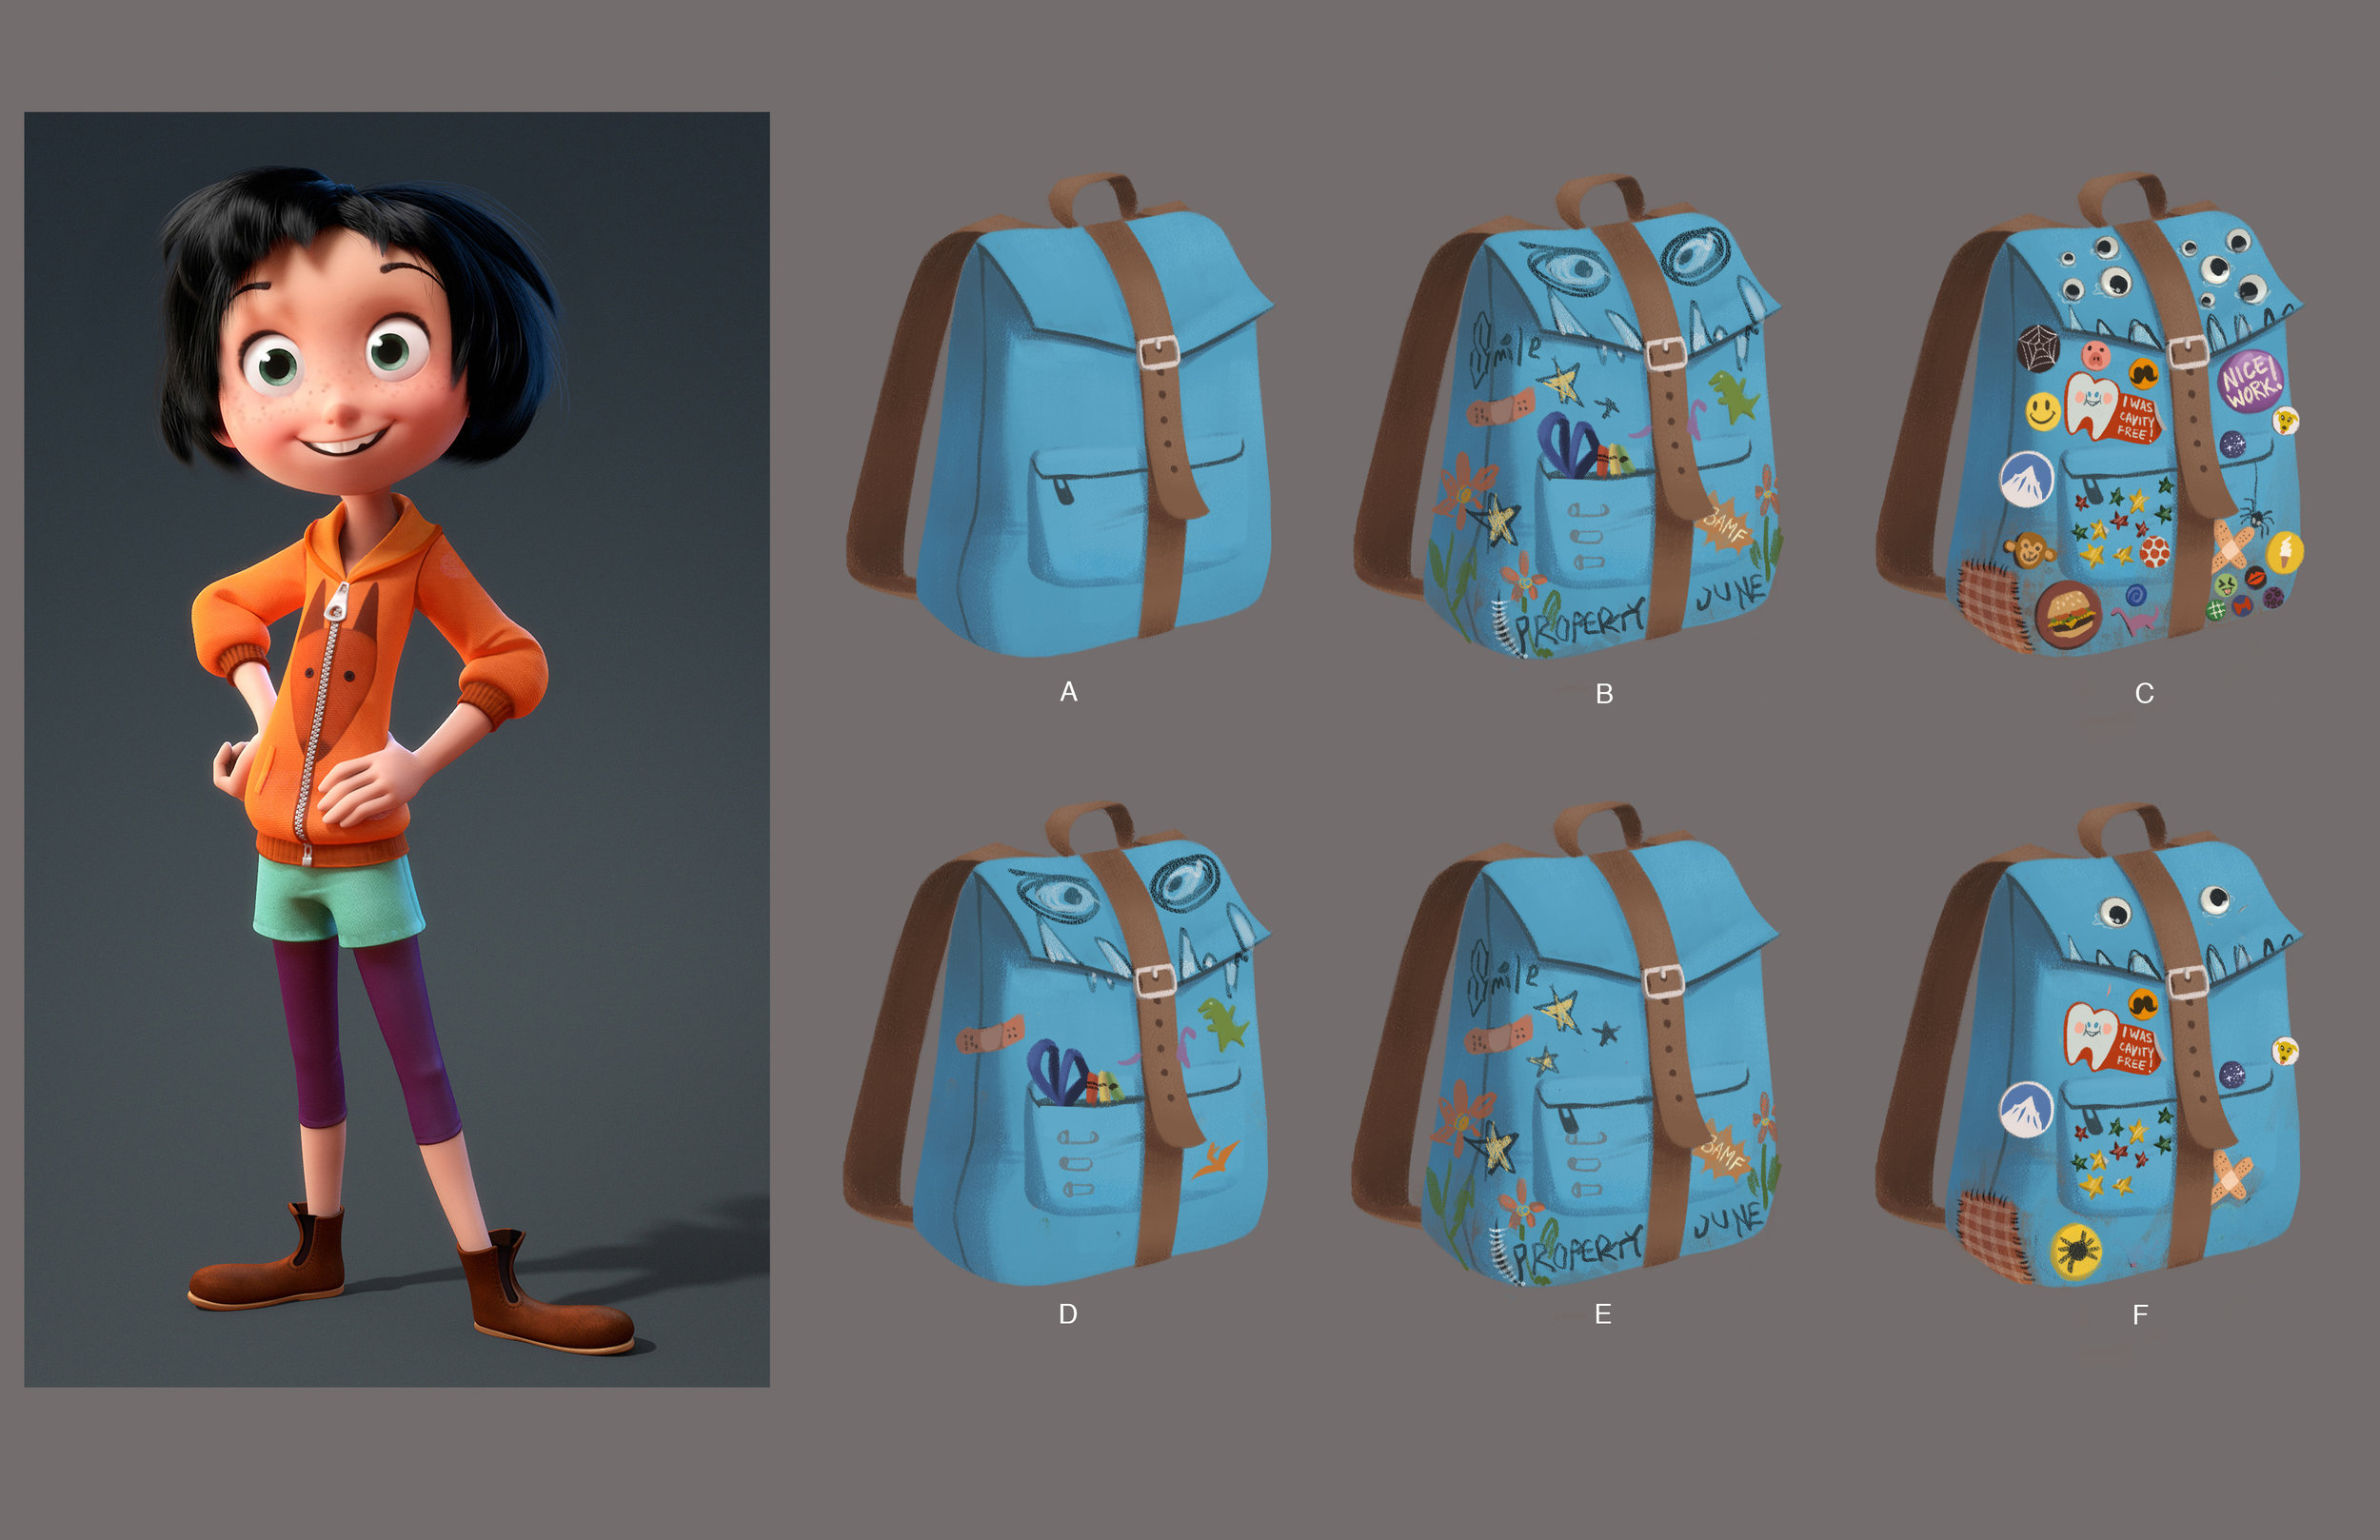 Further explorations on June's backpack. It was supposed to feel like a creative 12-year-old girl had personalized it. F was the final chosen design.